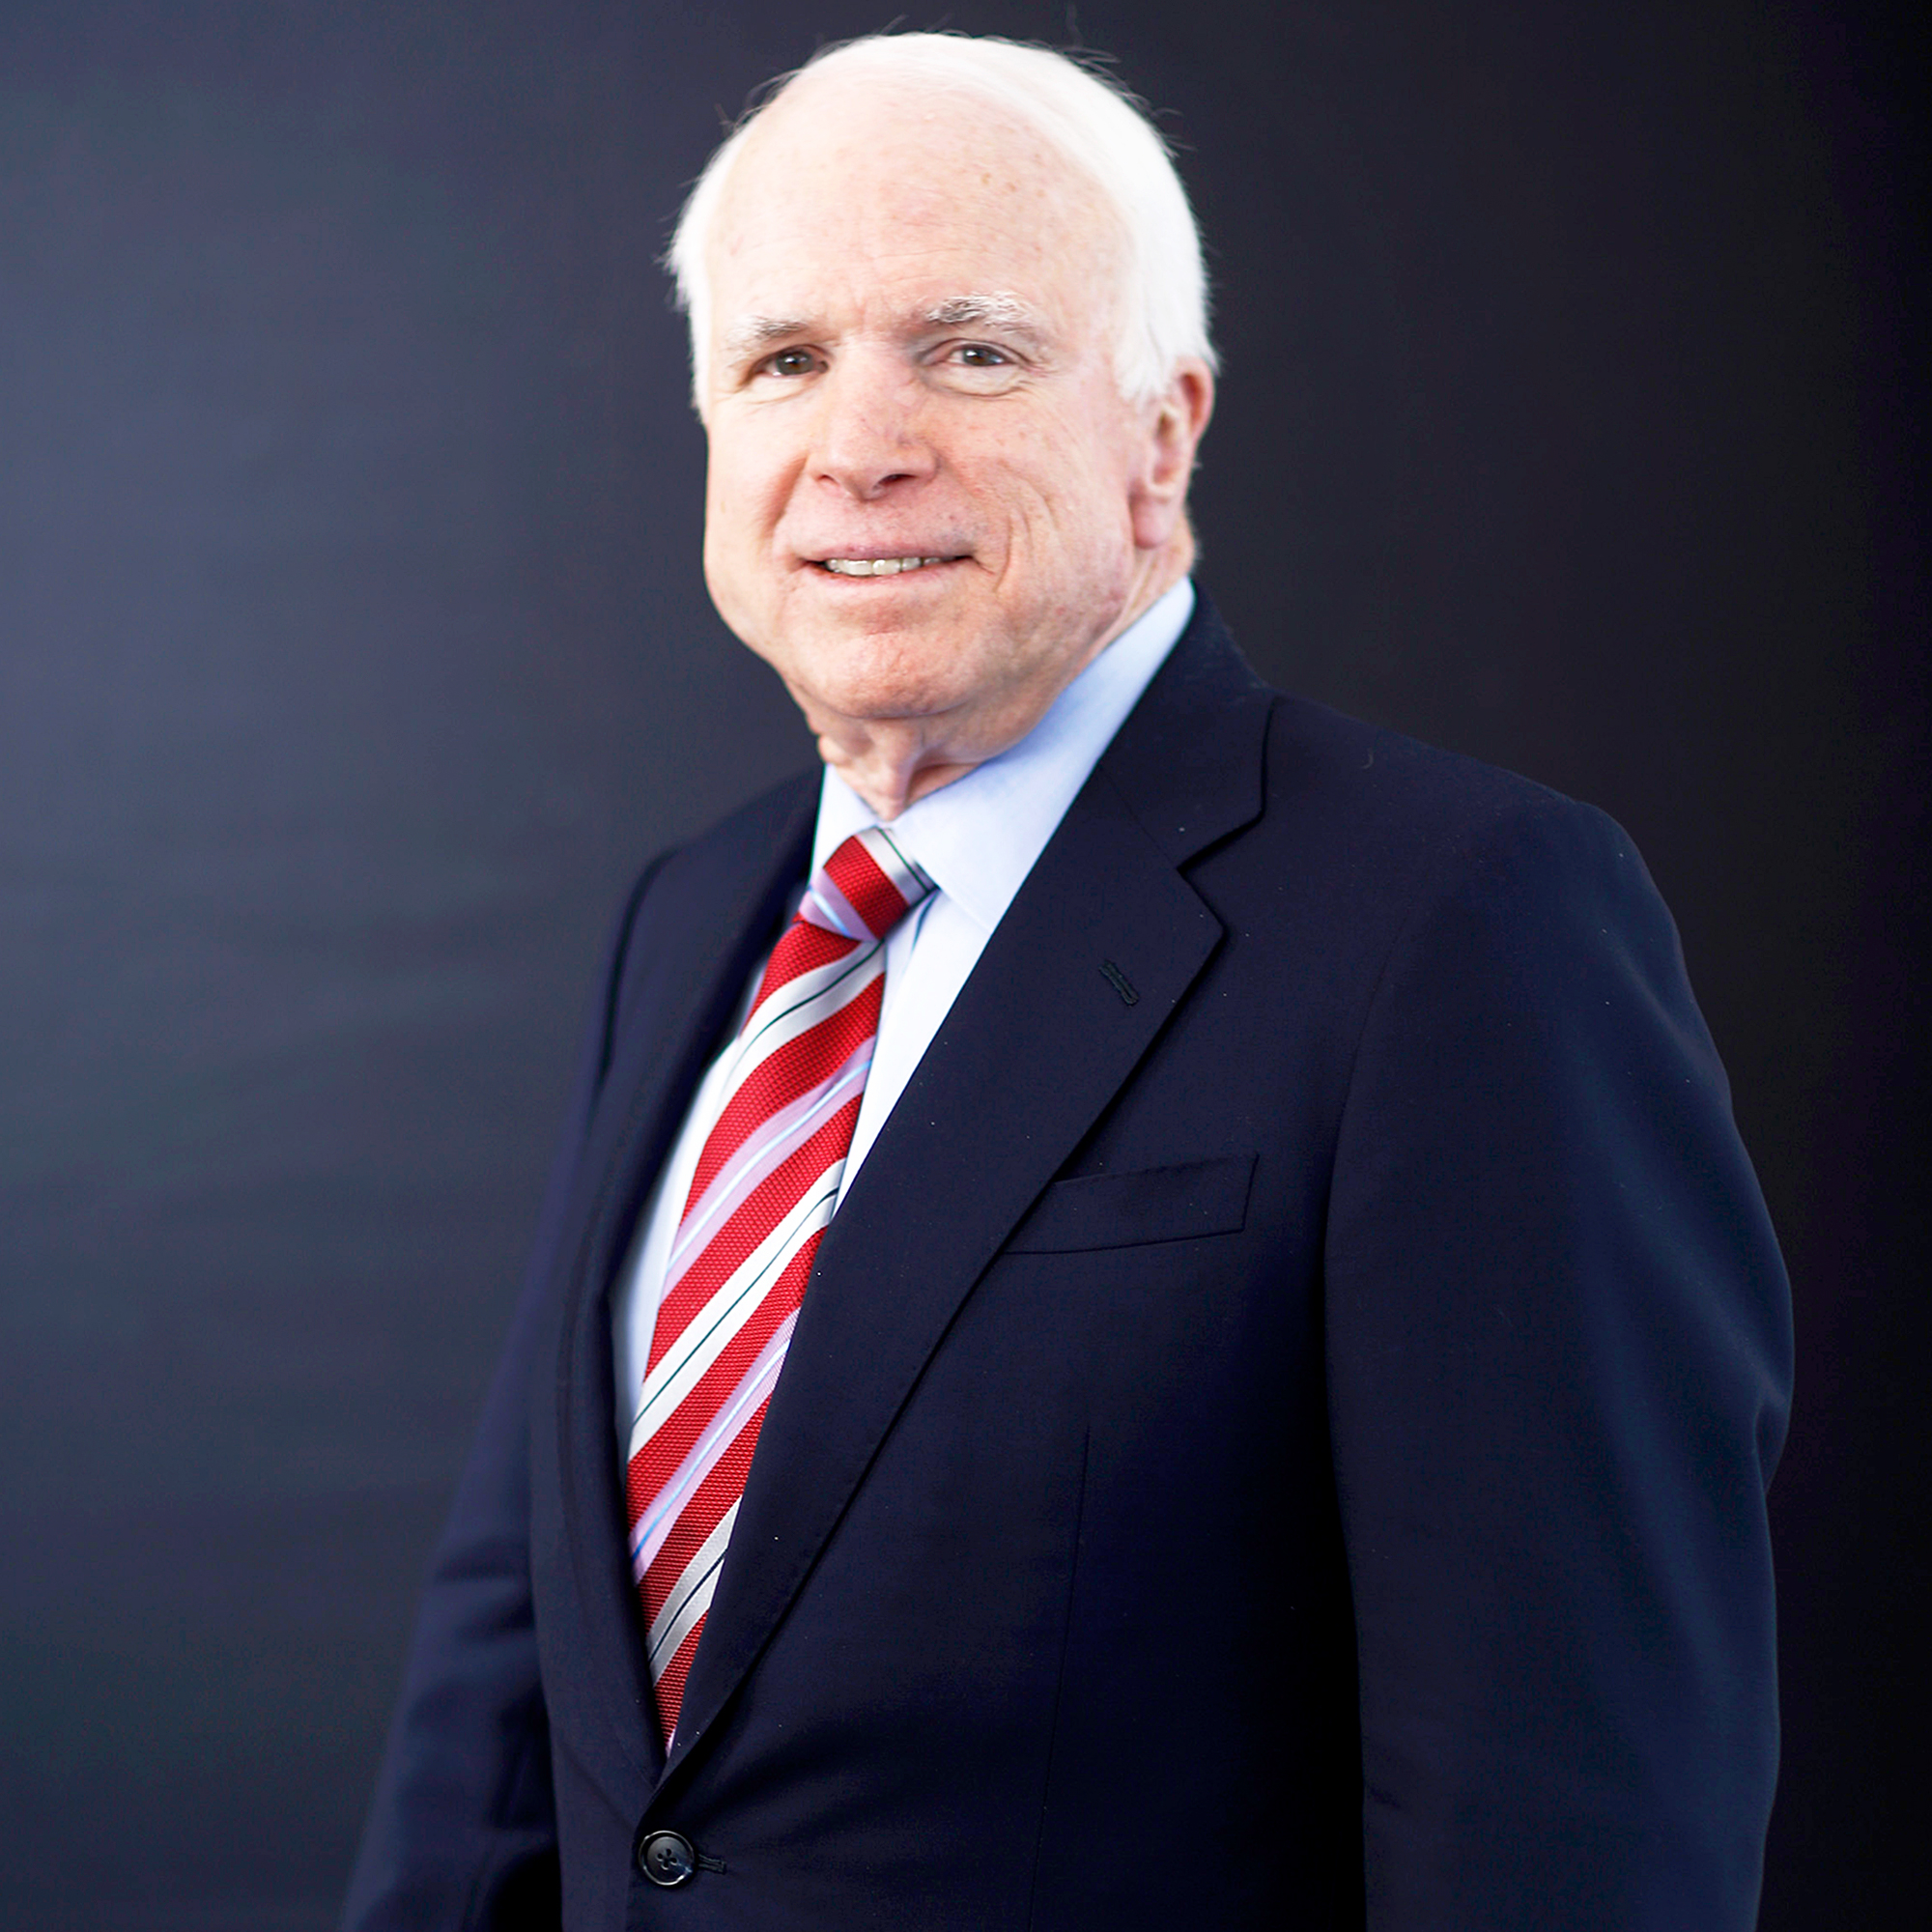 John Mccain Latest News Photos And Videos: John McCain To Return To Senate For Health Care Vote: Details